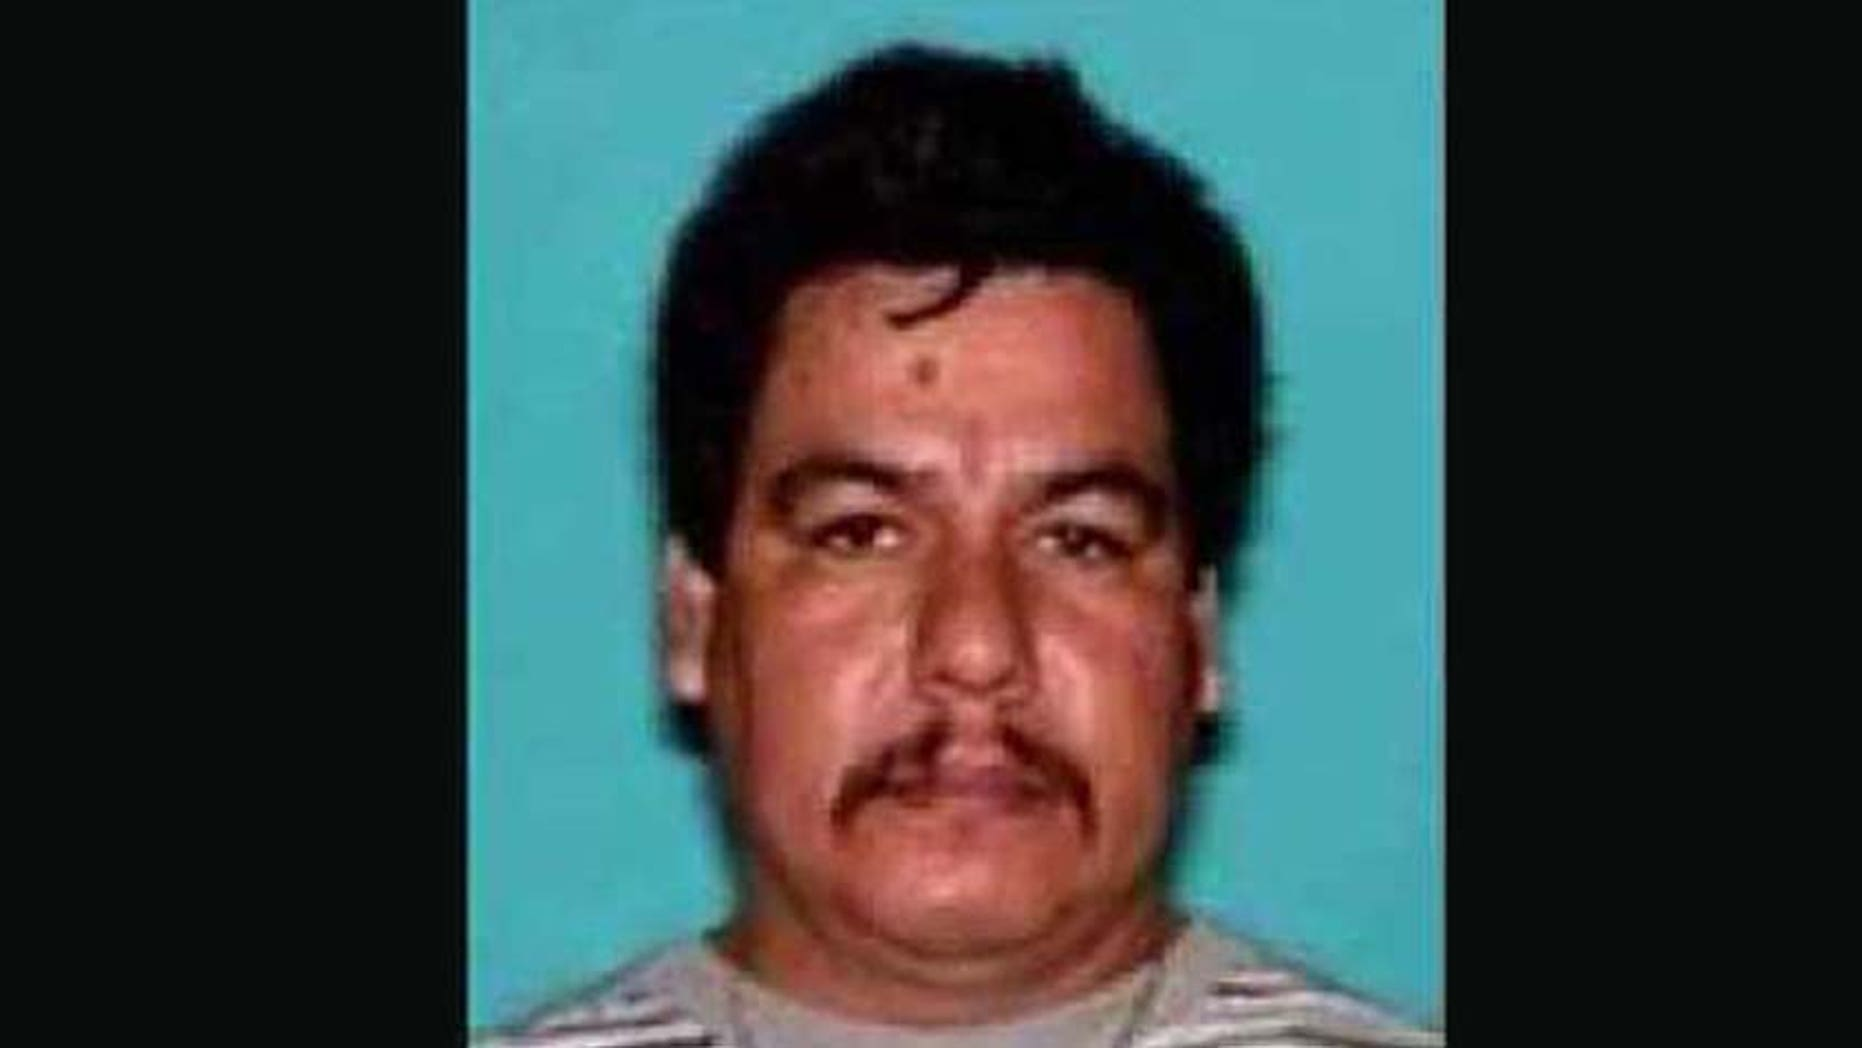 This undated photo, downloaded from the website of the US Drug Enforcement Administration, DEA, shows alleged Mexico's Gulf drug cartel leader Antonio Ezequiel Cardenas Guillen. According to Mexico's Federal security spokesman Alejandro Poire, Cardenas was killed during a clash with marines in Matamoros, Tamaulipas state, Mexico, Friday. Nov. 5, 2010. Three gunmen and two marines were also killed during the shootout. (AP Photo/DEA)